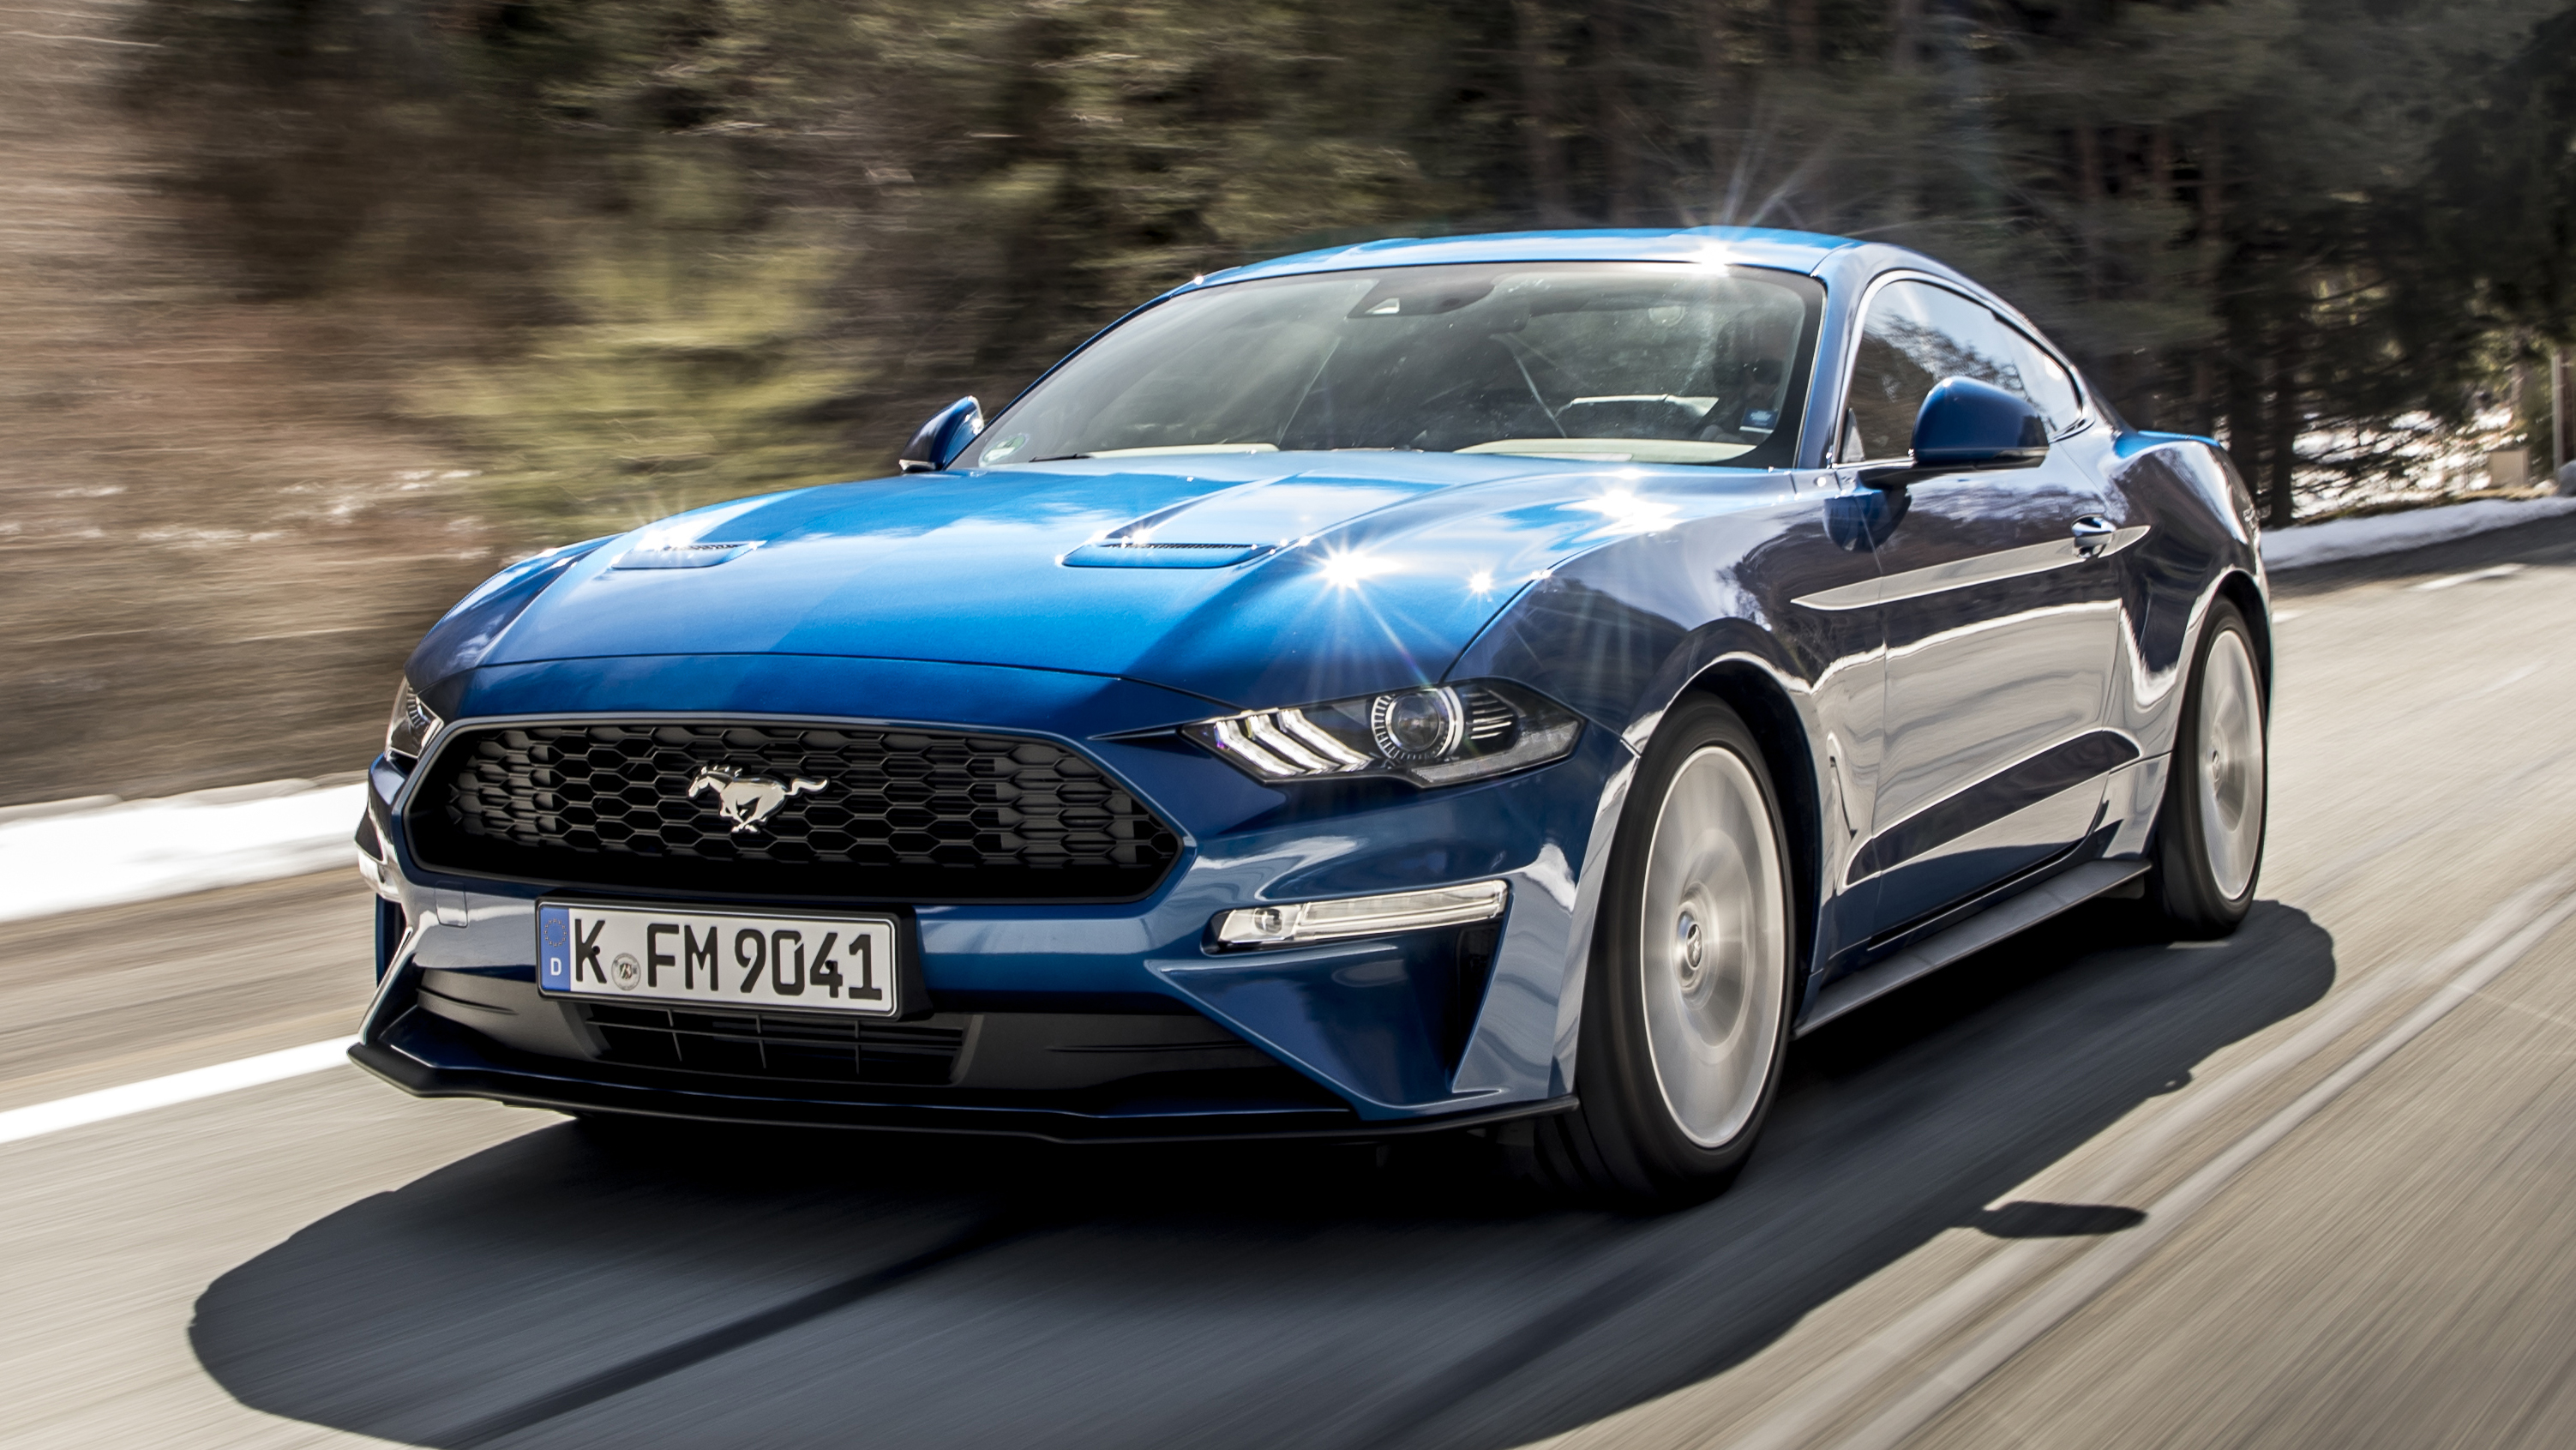 2018 ford mustang review top gear. Black Bedroom Furniture Sets. Home Design Ideas